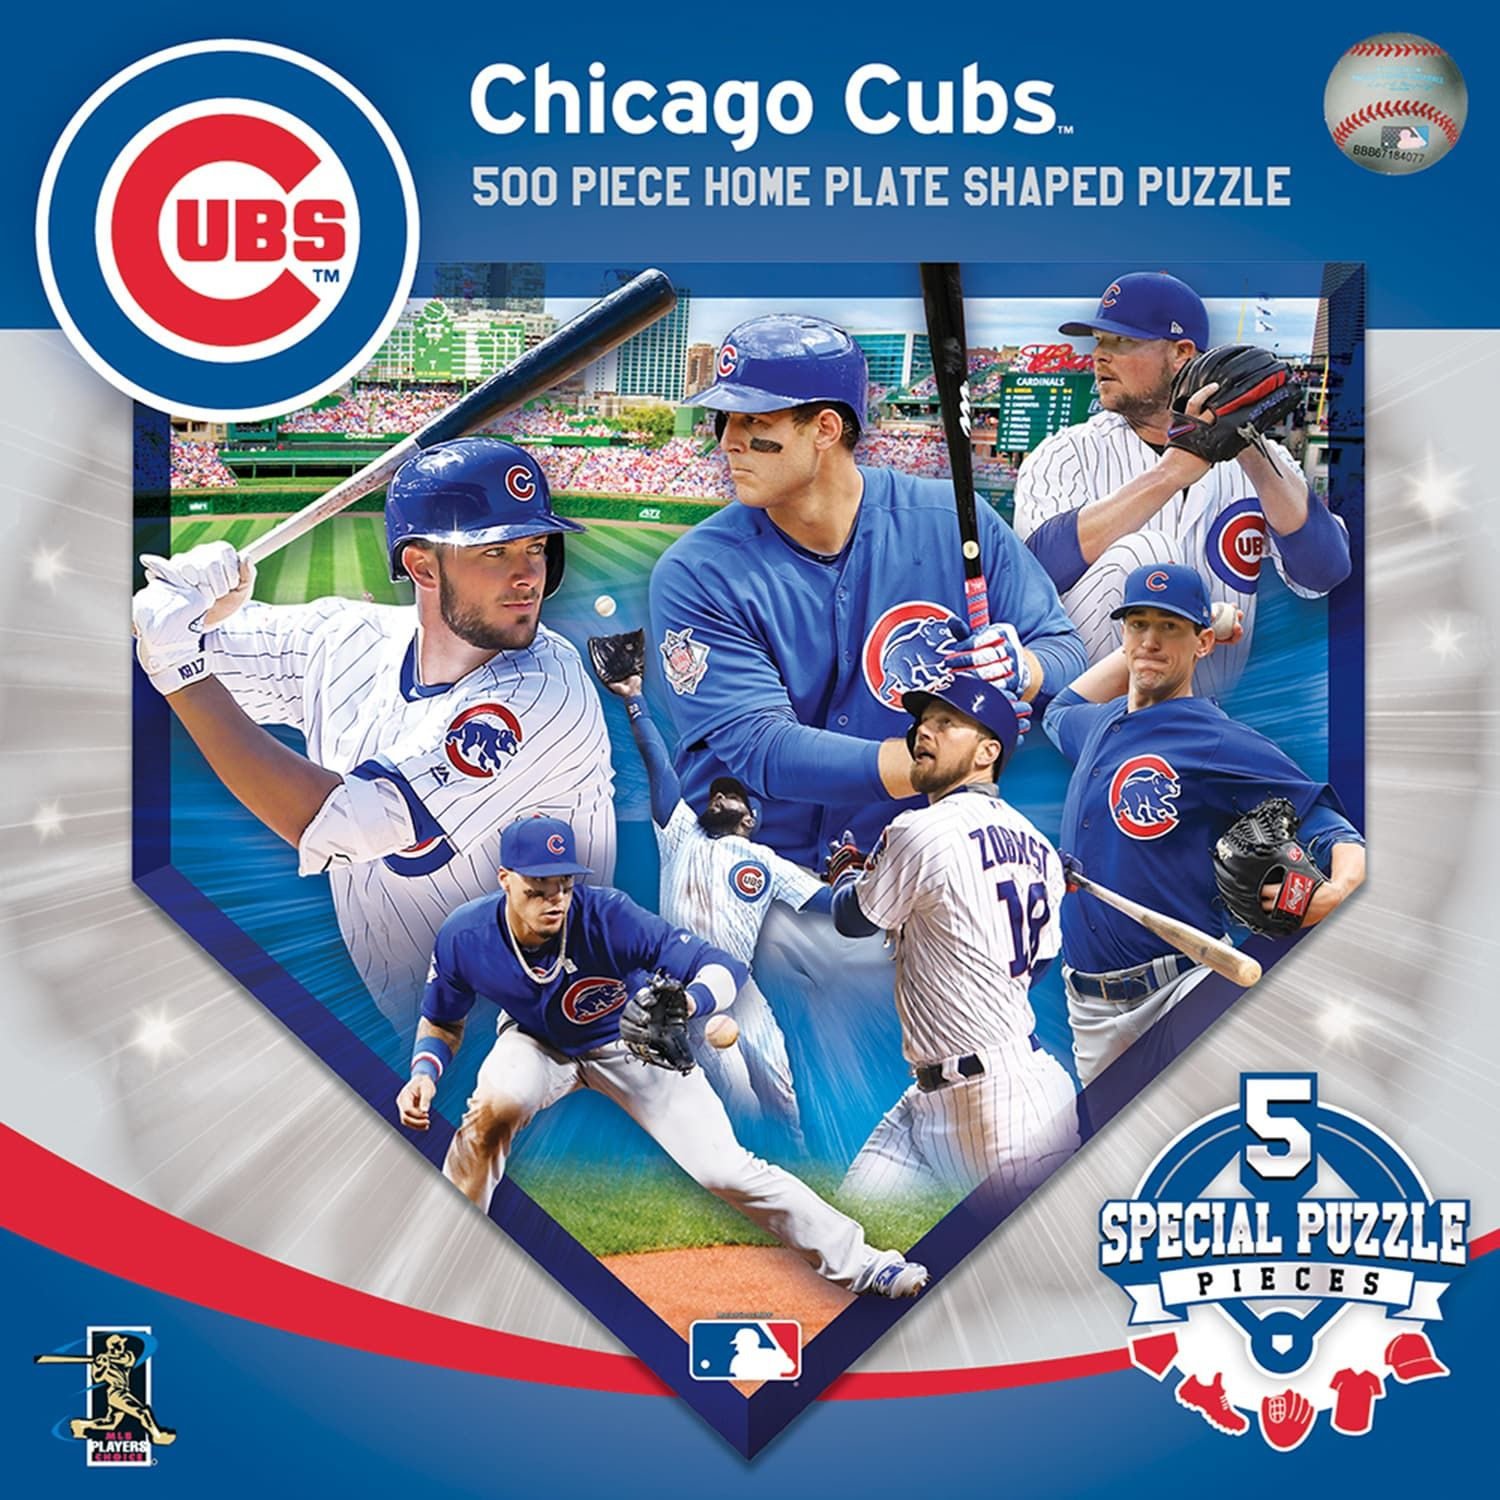 Chicago Cubs Mlb Home Plate Shaped Puzzle Mlb Affiliate Cubs Chicago Home Mlb Chicago Cubs Chicago Cubs Print Chicago Cubs